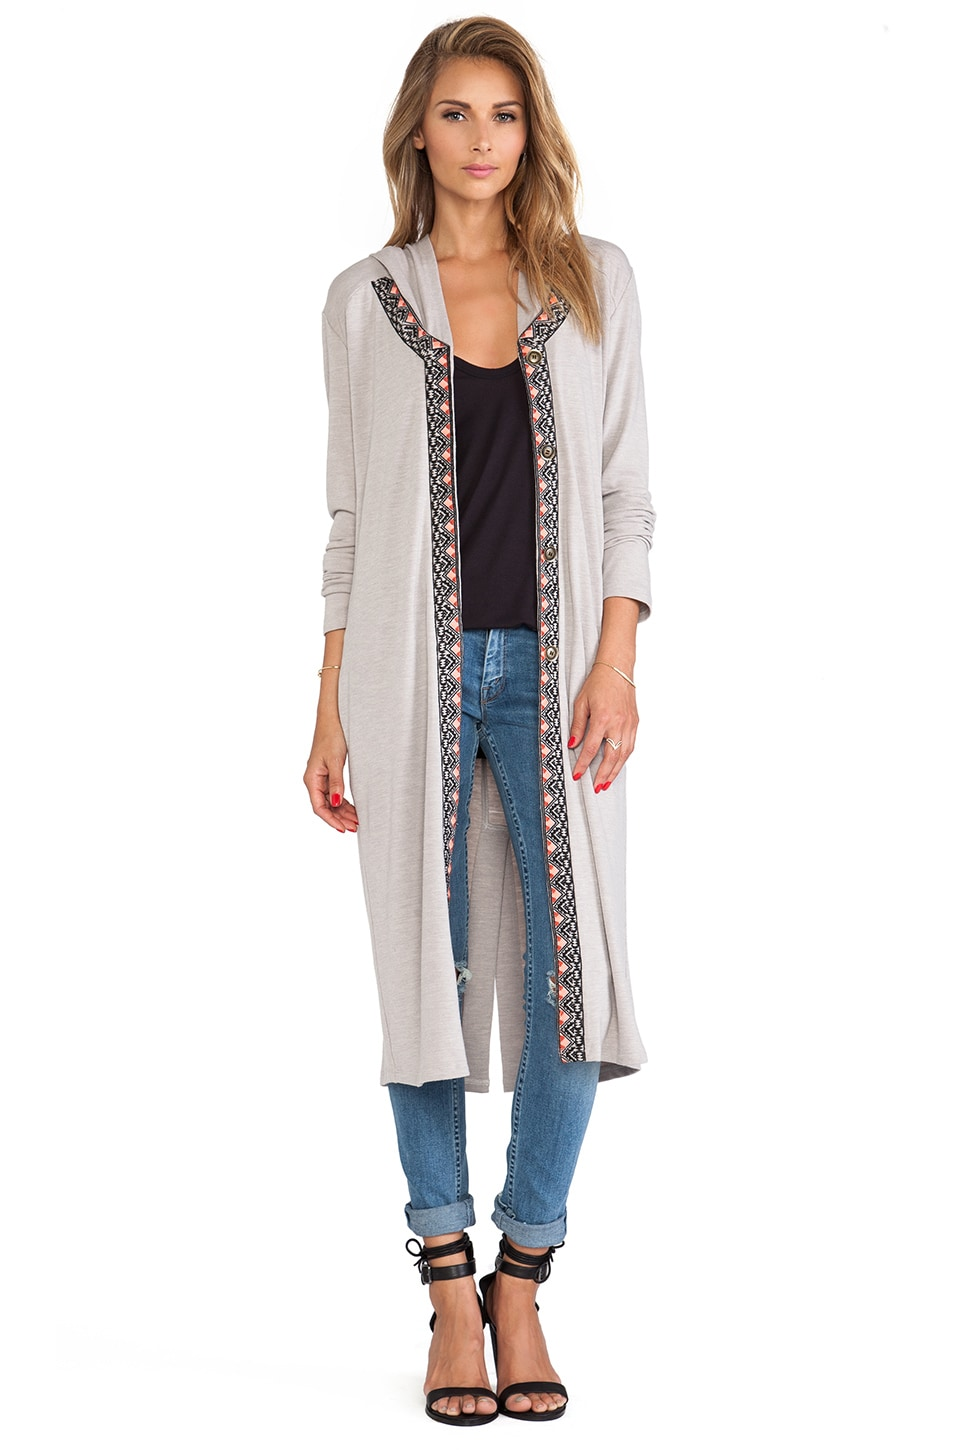 6 SHORE ROAD Tigress Hooded Cardigan in Winter White